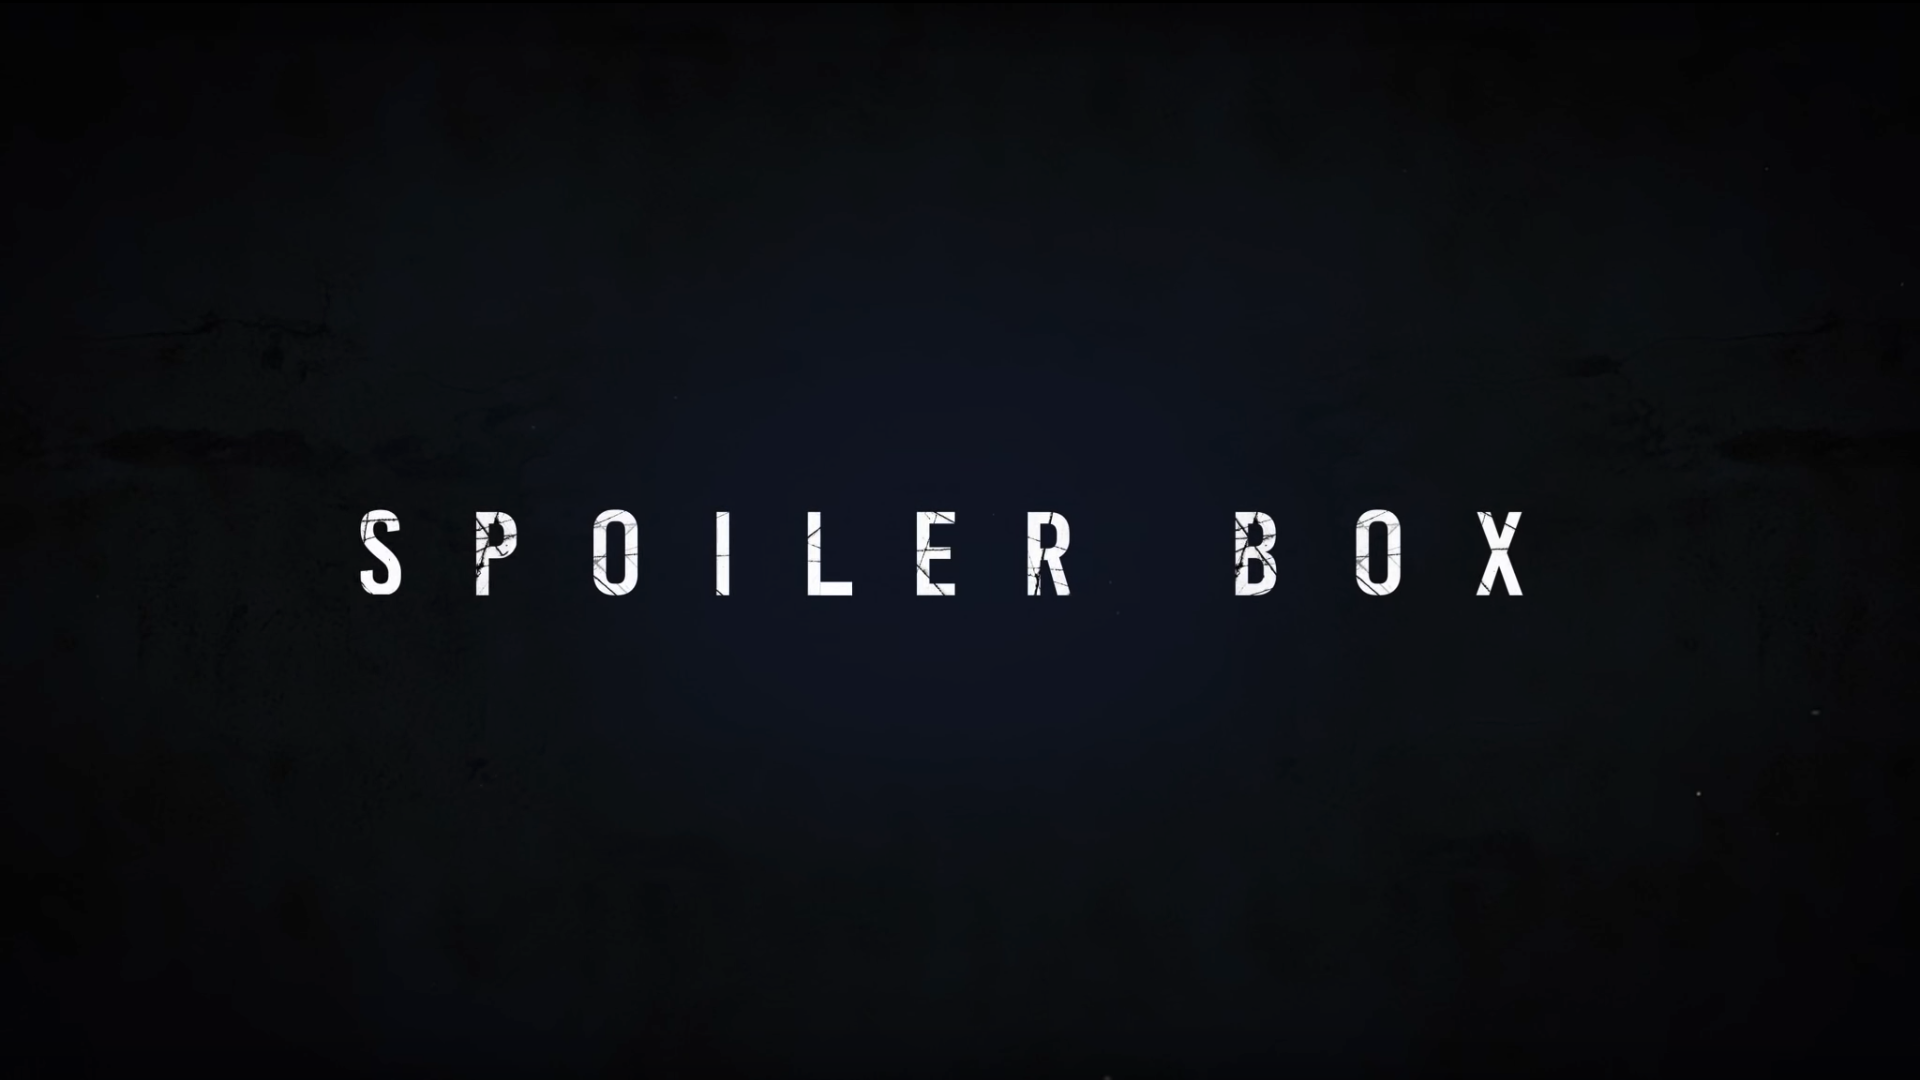 Image Media for Spoiler Box